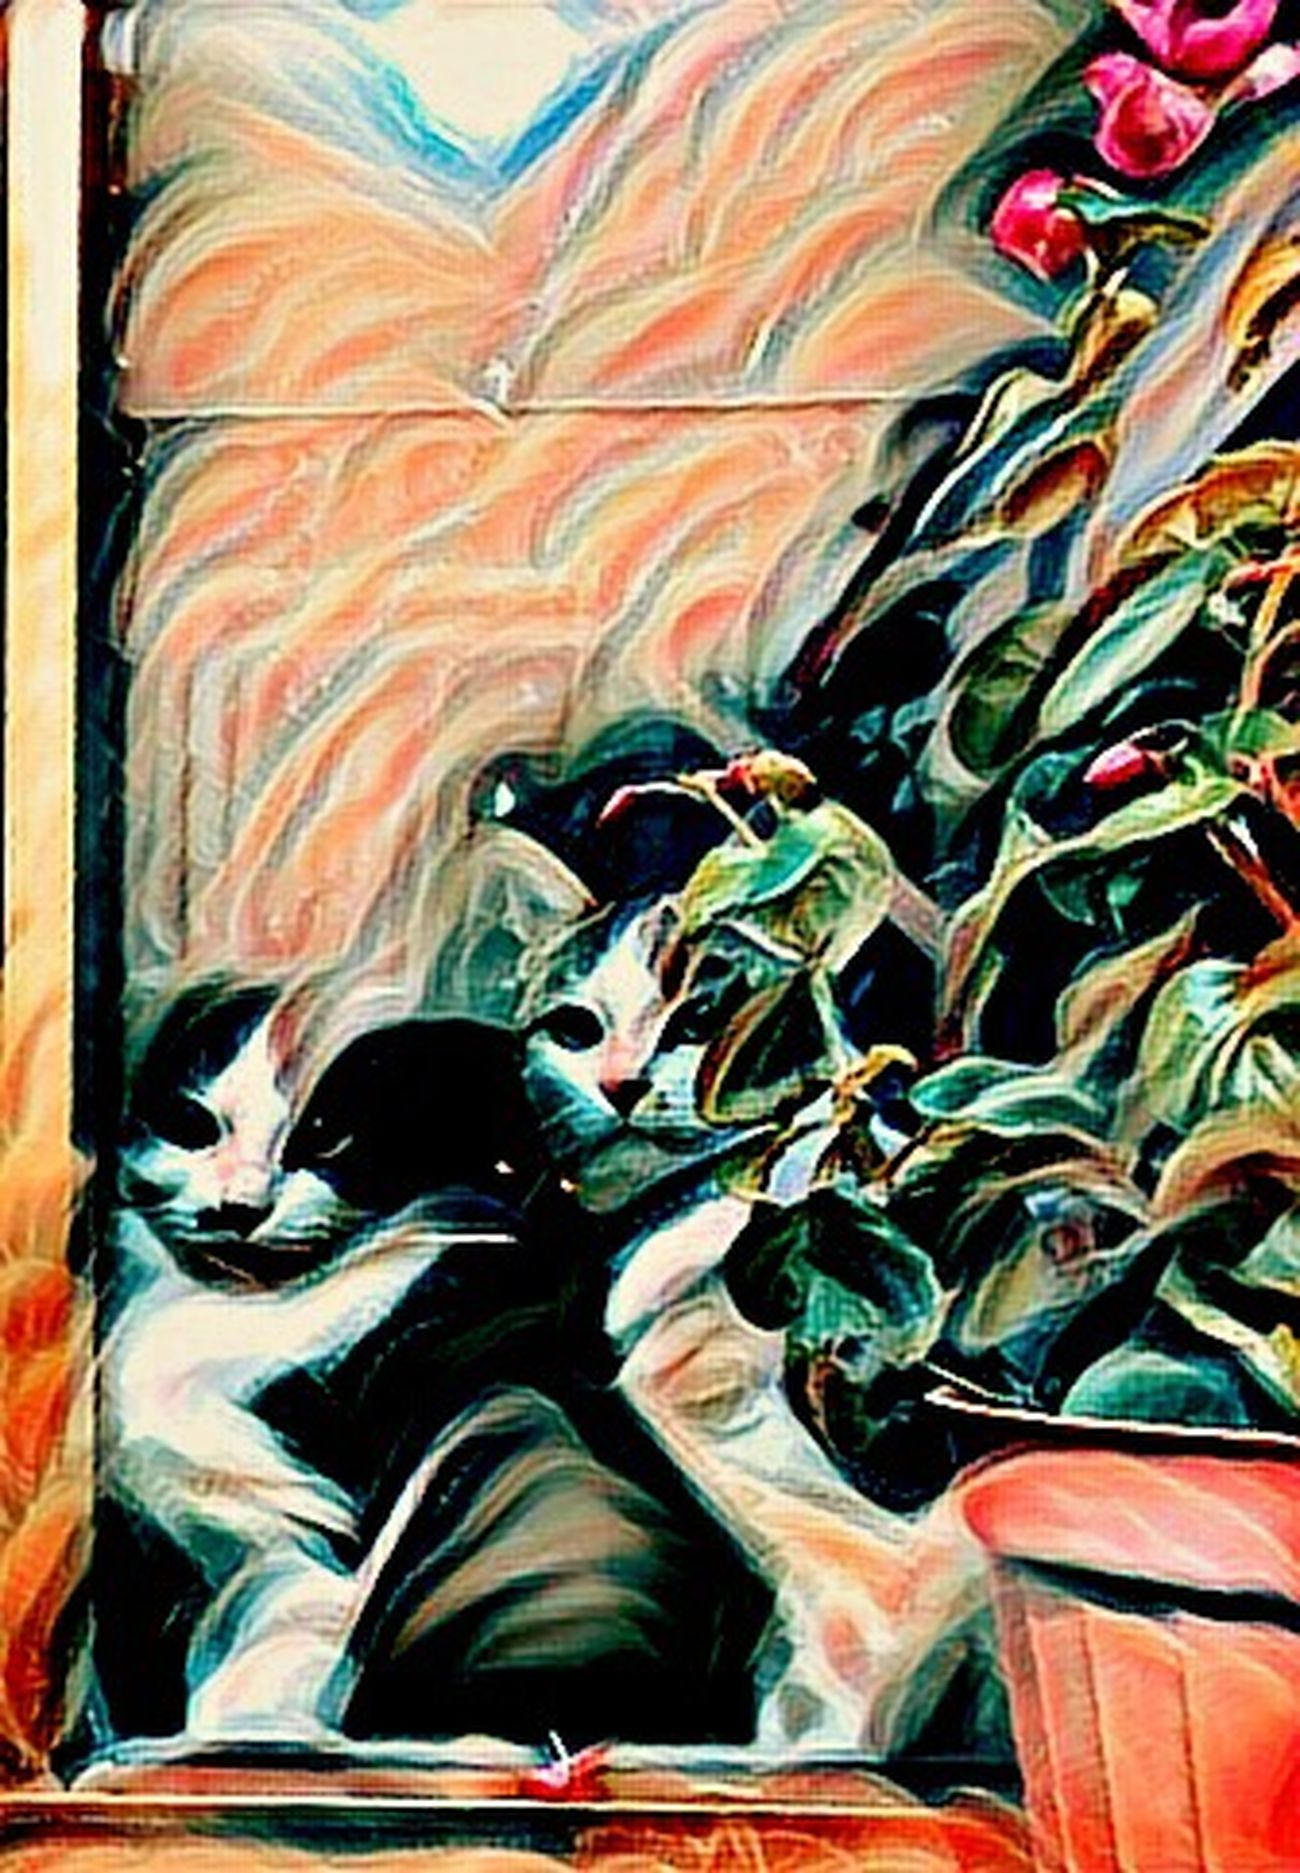 Multi Colored No People Low Angle View Indoors  Close-up Day Eyeemphoto Architecture EyeEm Best Shots EyeEm Gallery Relaxing Domestic Animals Catsofinstagram Cats Cat Pupsofinstagram Pups Puppy EyeEm Best Edits Hello World Kurtdere SARAY TEKİRDAĞ